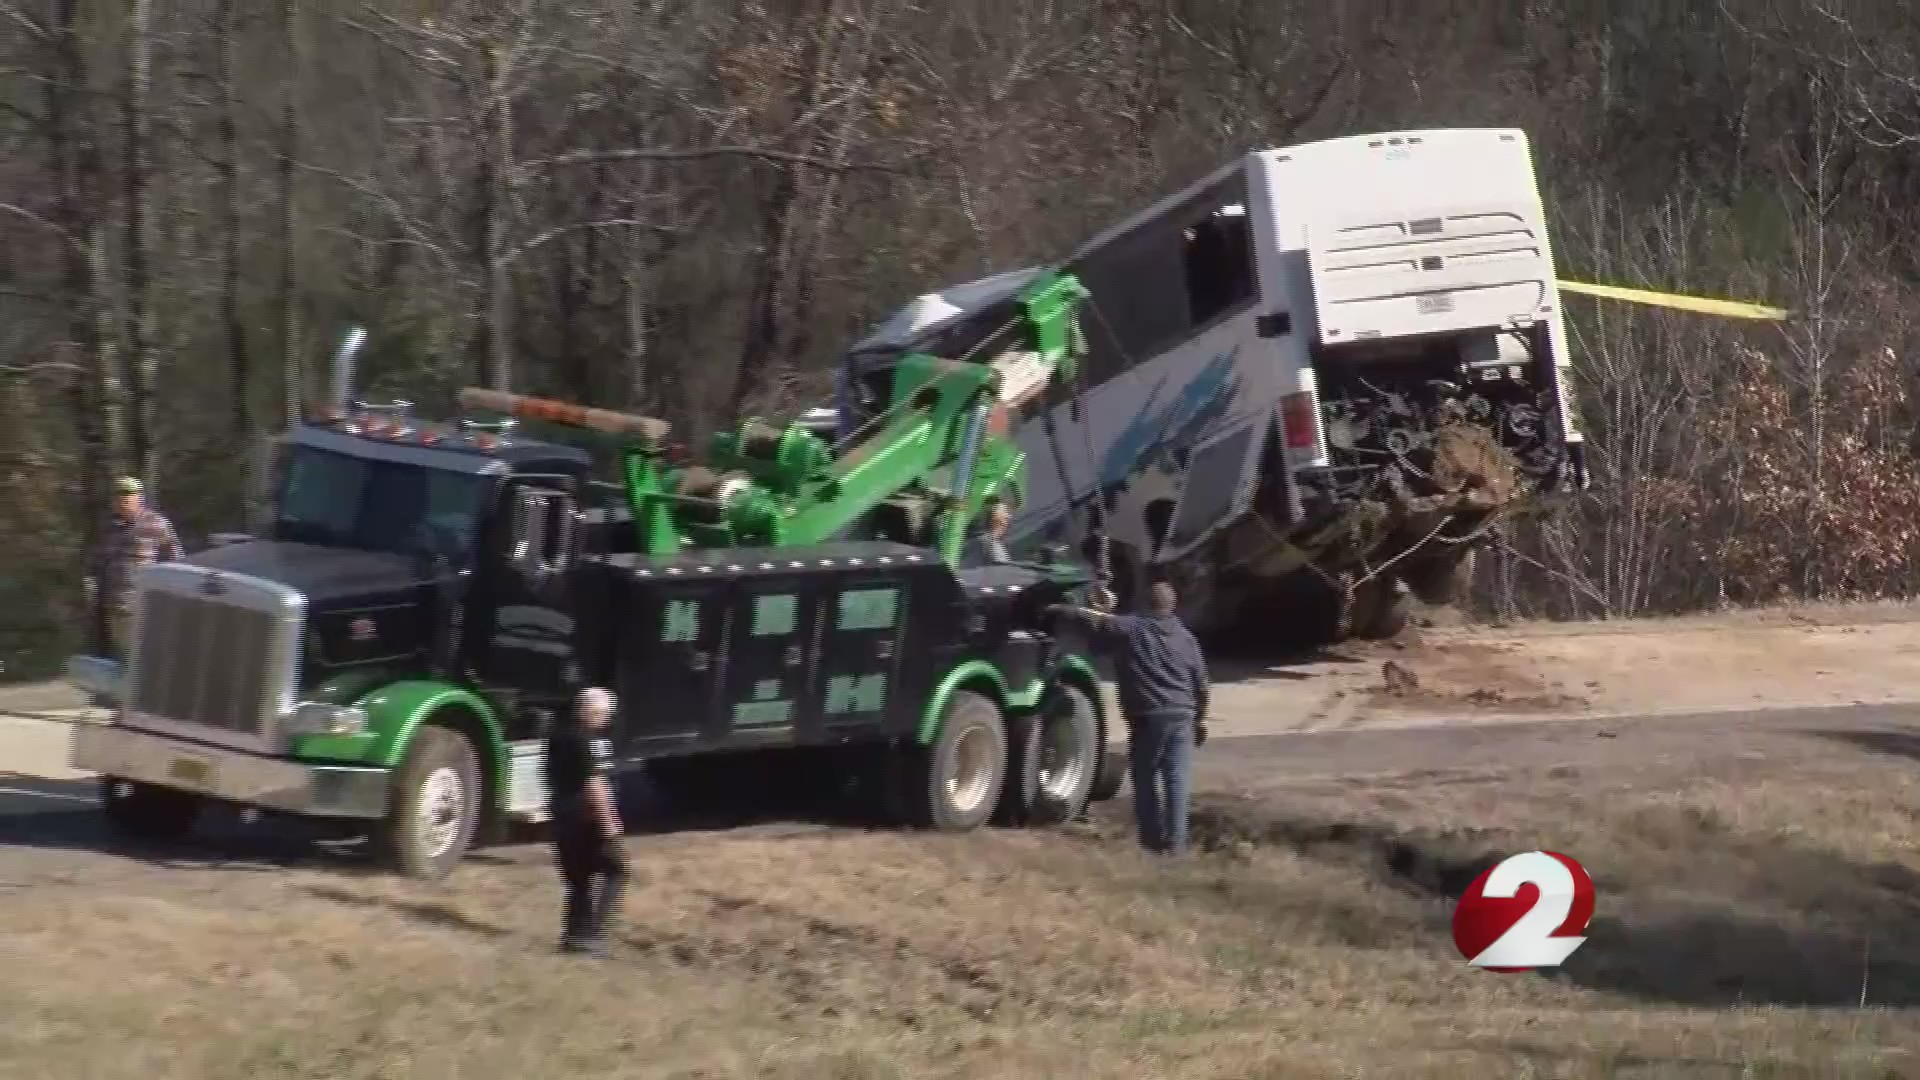 Investigators looking into deadly little league bus crash